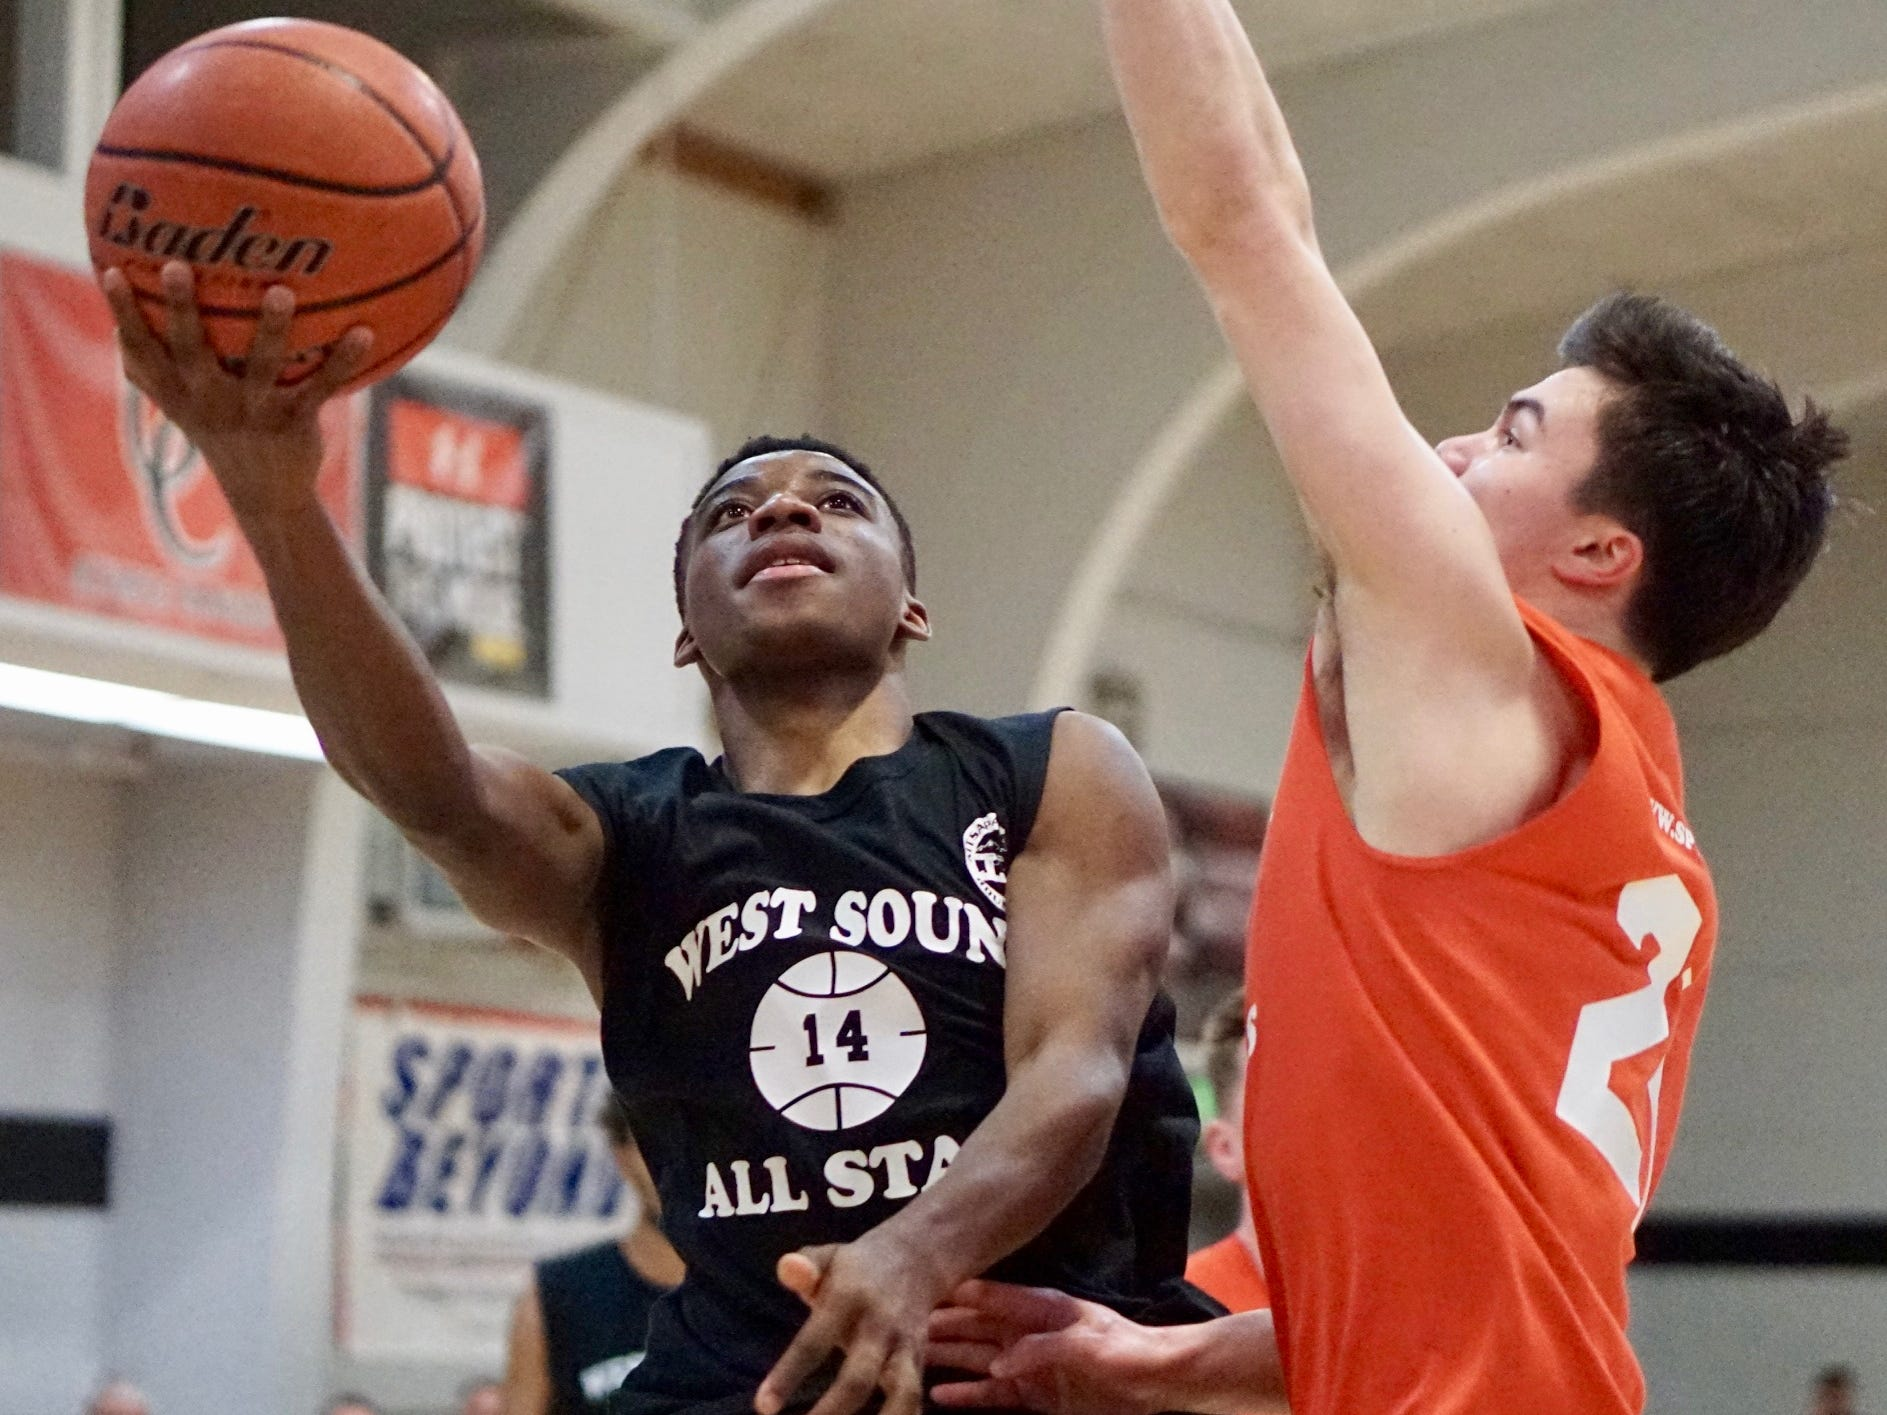 Central Kitsap's Elijah McGee goes to the basket while Olympic's Brandon Barron defends during Tuesday's West Sound Senior High School All-Star boys basketball game at Olympic College.